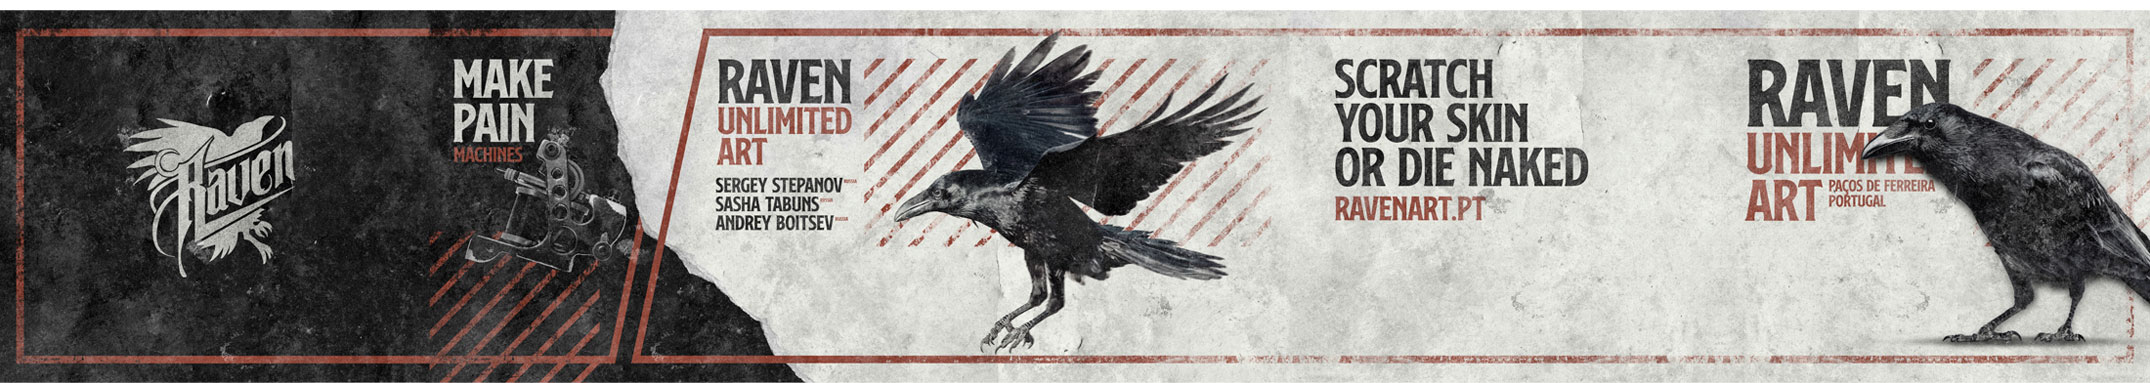 raven-stand_04